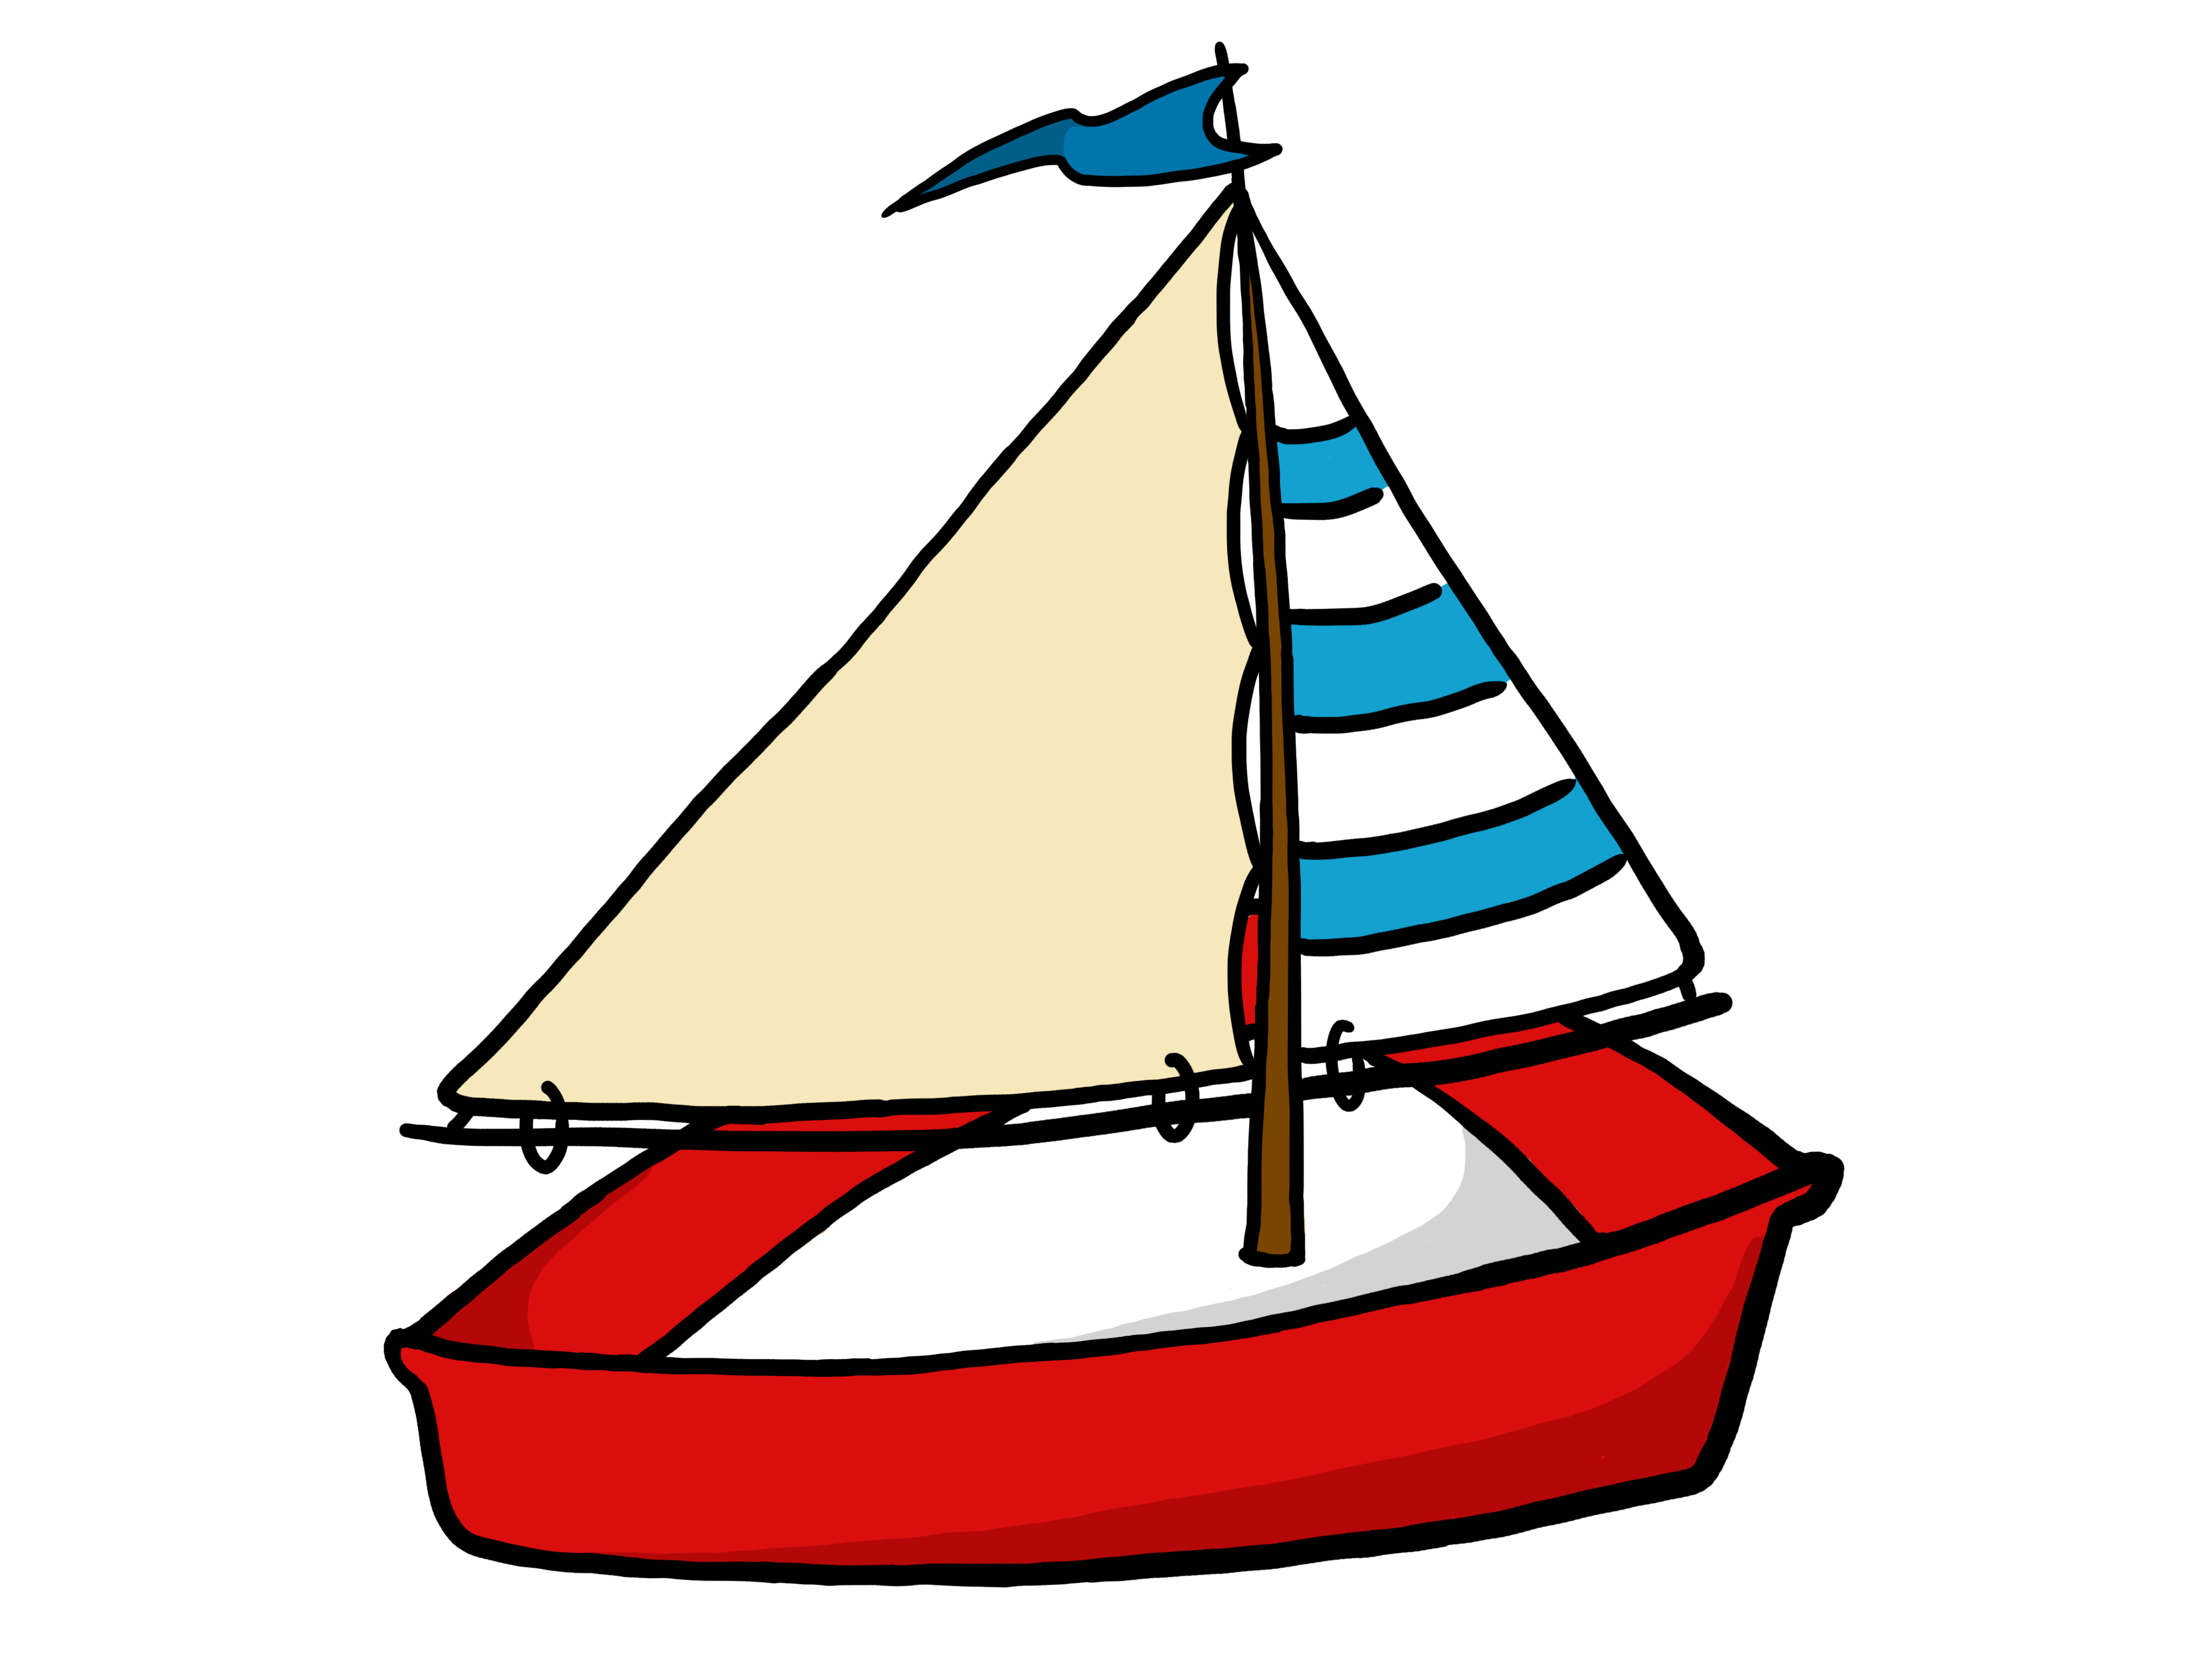 Boating Clipart Free Clipart Images-Boating clipart free clipart images-6